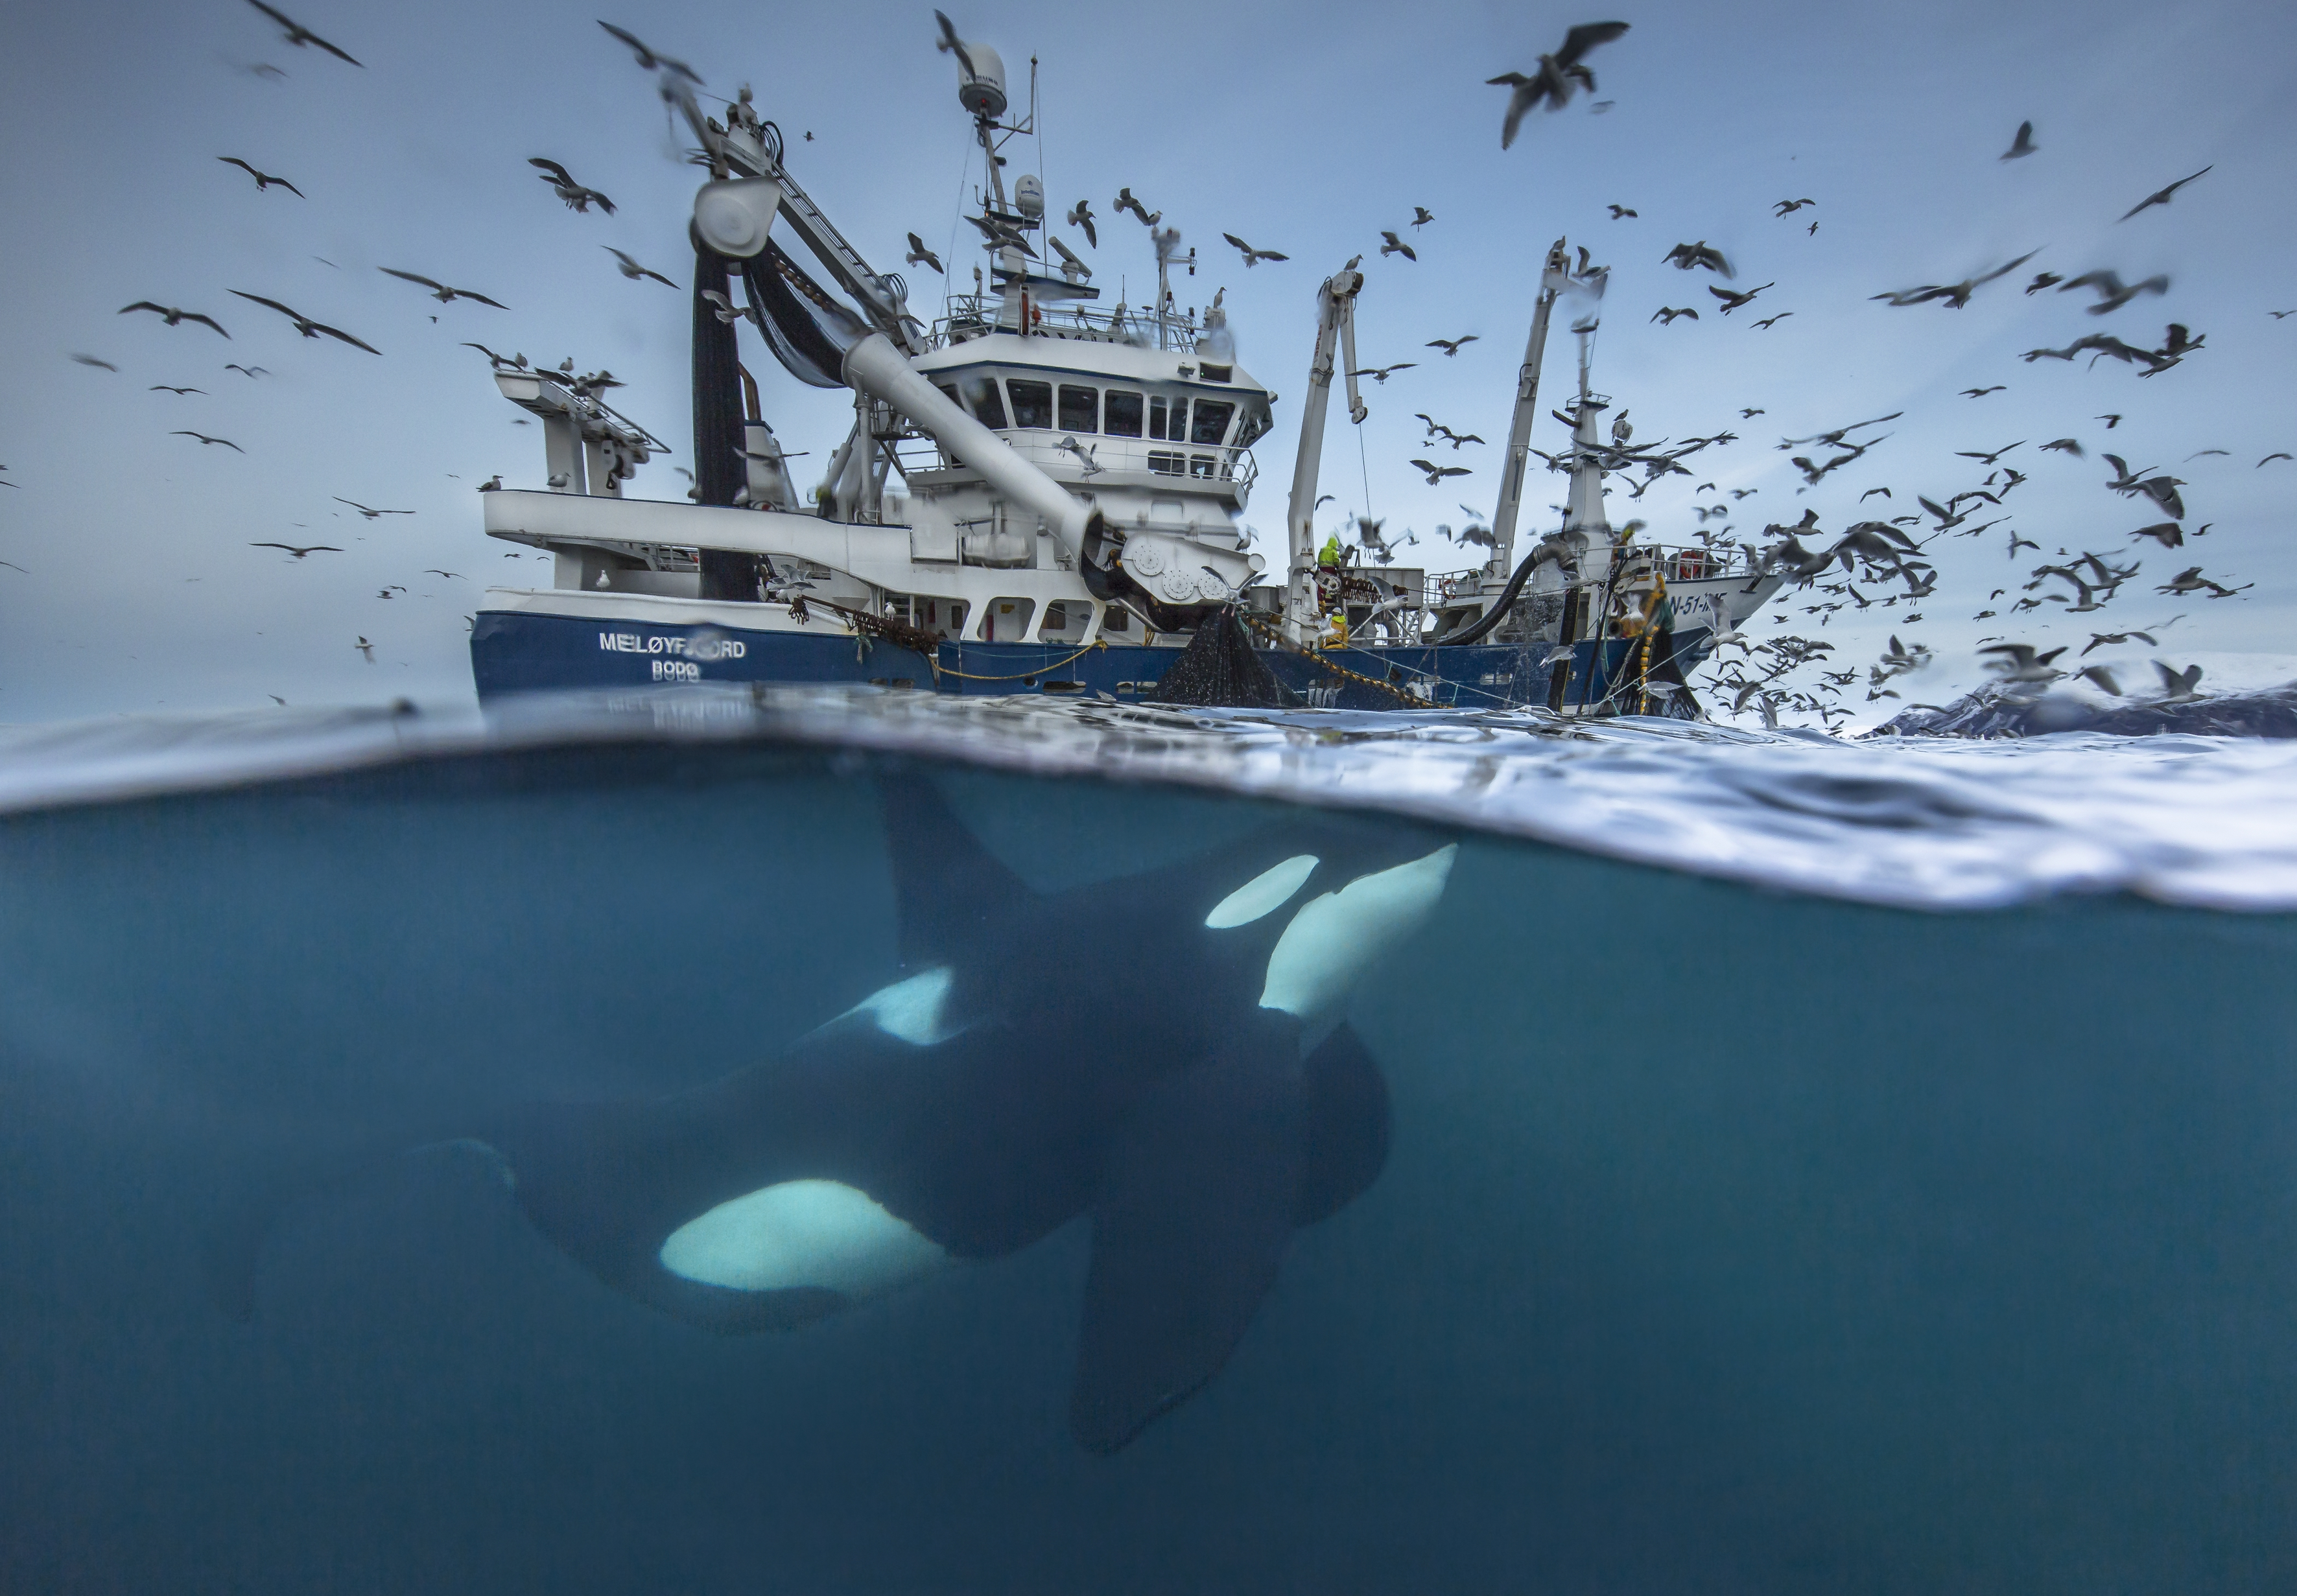 Geteilter Fang (Splitting the catch), Copyright Audun Rikardsen / Wildlife Photographer of the Year